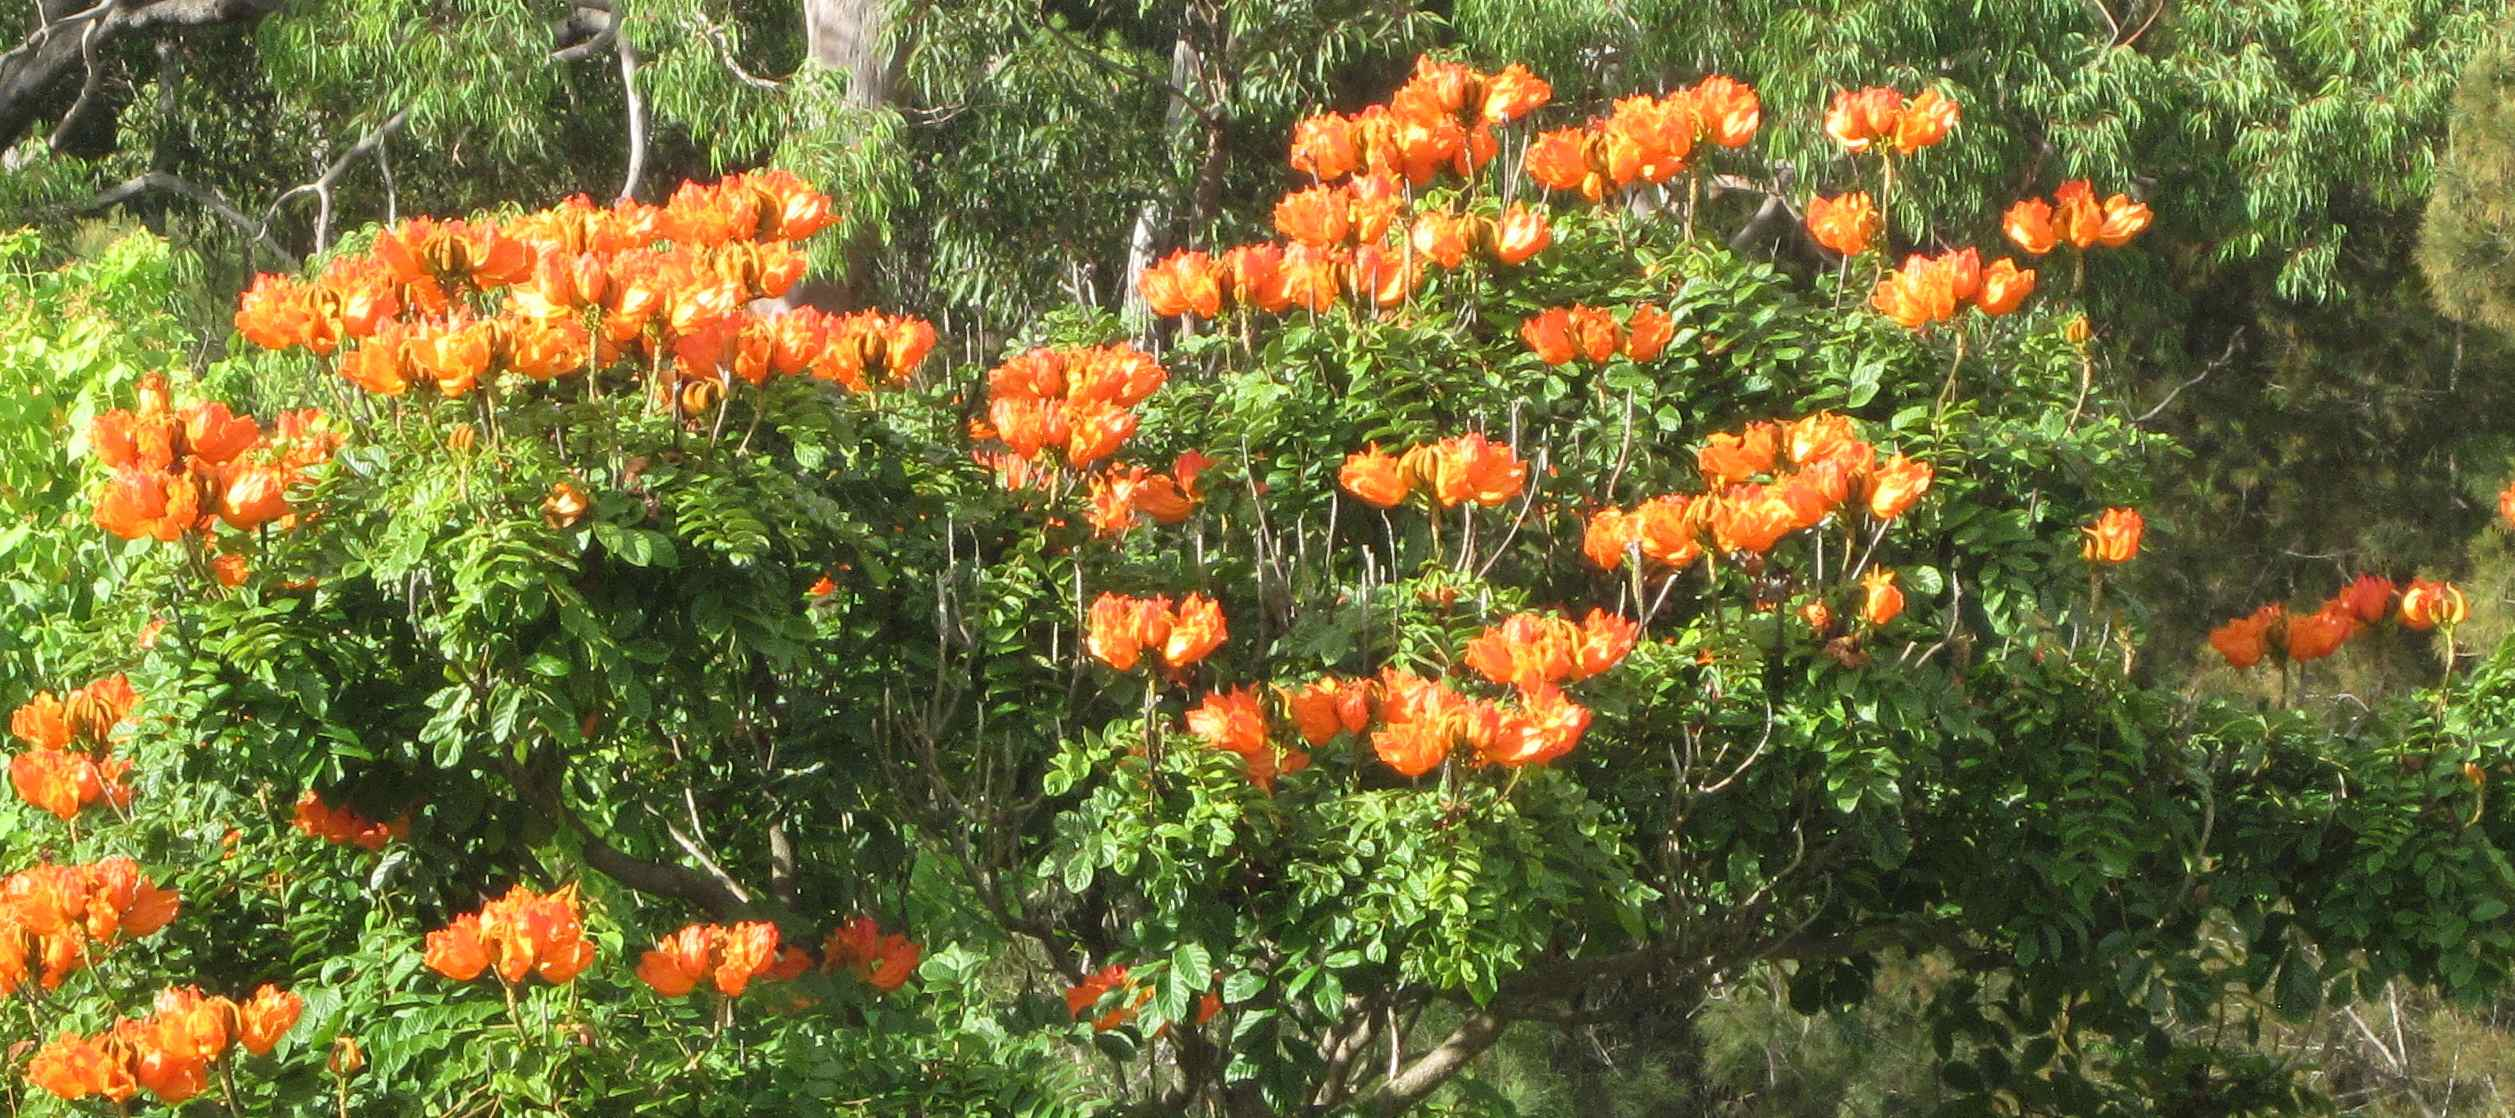 IMCNSW: African Tulip Tree (Spathodea campanulata) April 2012